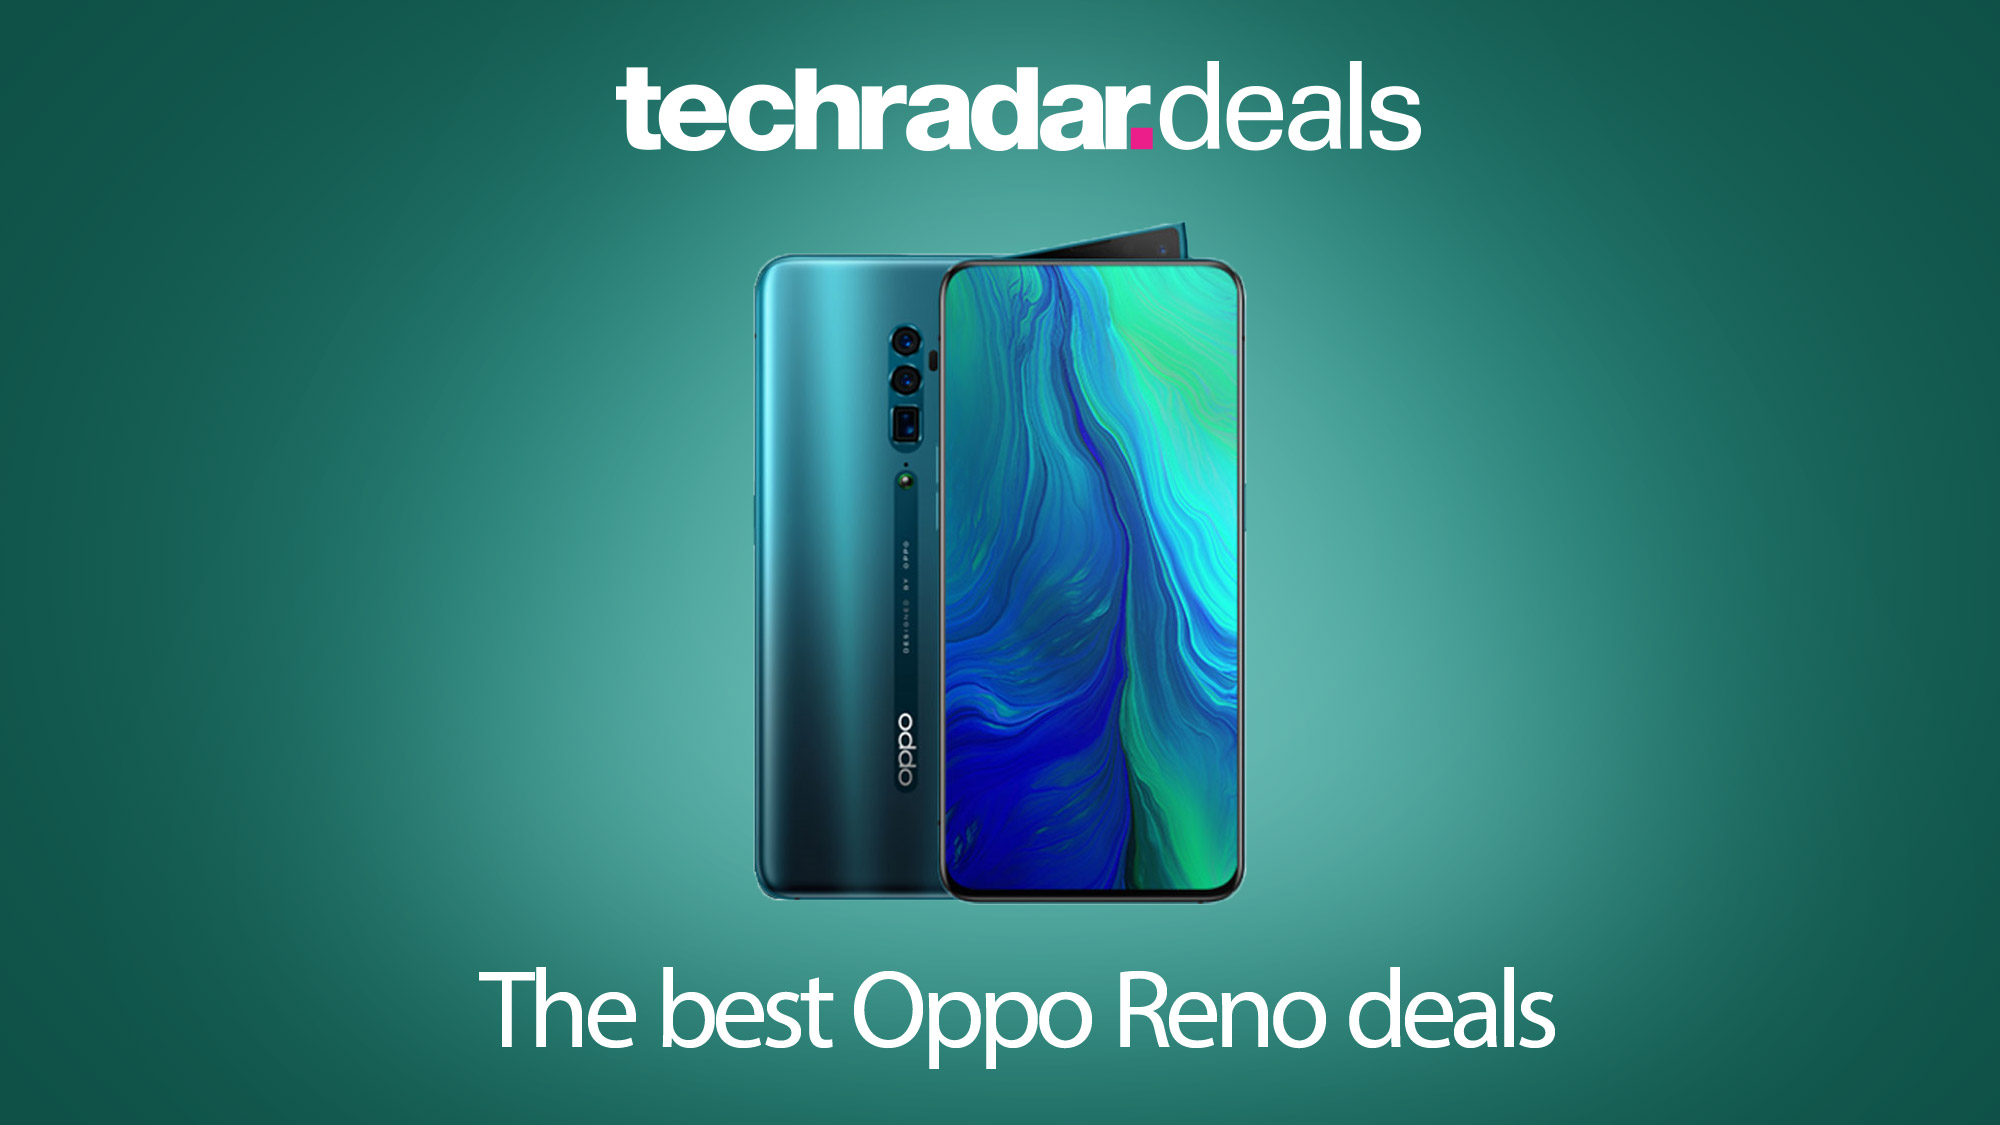 The best Oppo Reno and Oppo Reno 10x Zoom deals in September